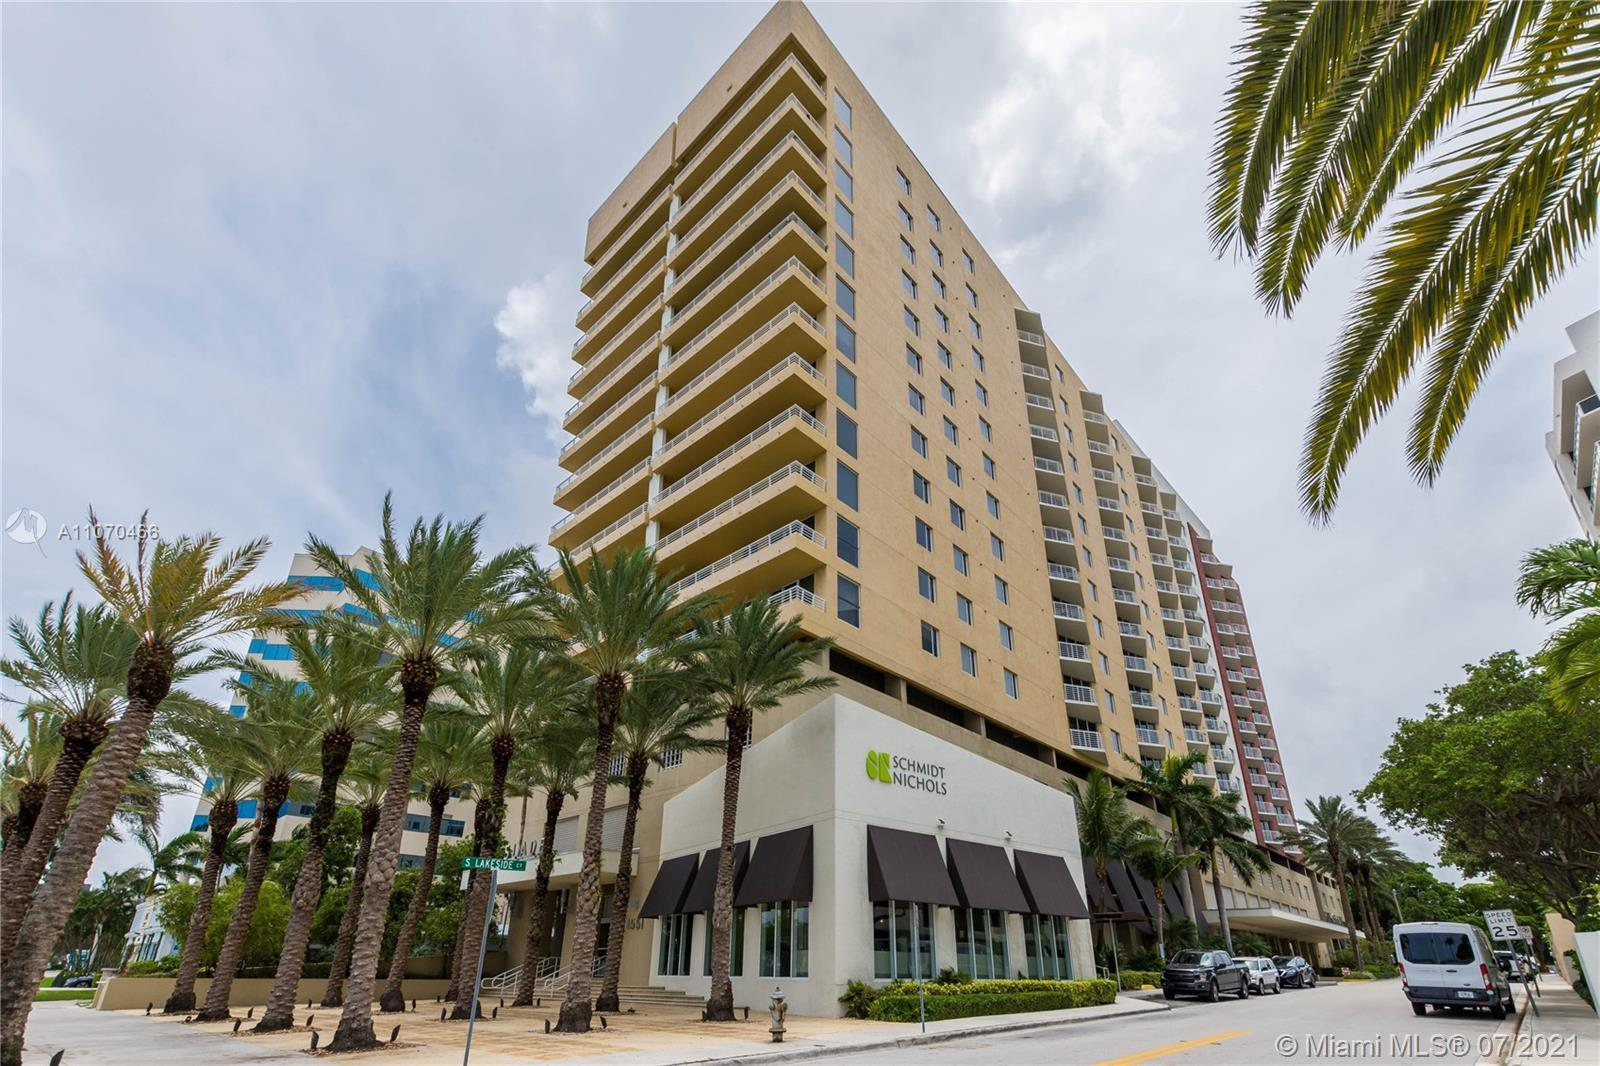 DOWNTOWN WPB CONDO WITH FABULOUS NE INTRACOASTAL VIEWS, UPGRADED CALIFORNIA CLOSETS, CROWN MOLDING,